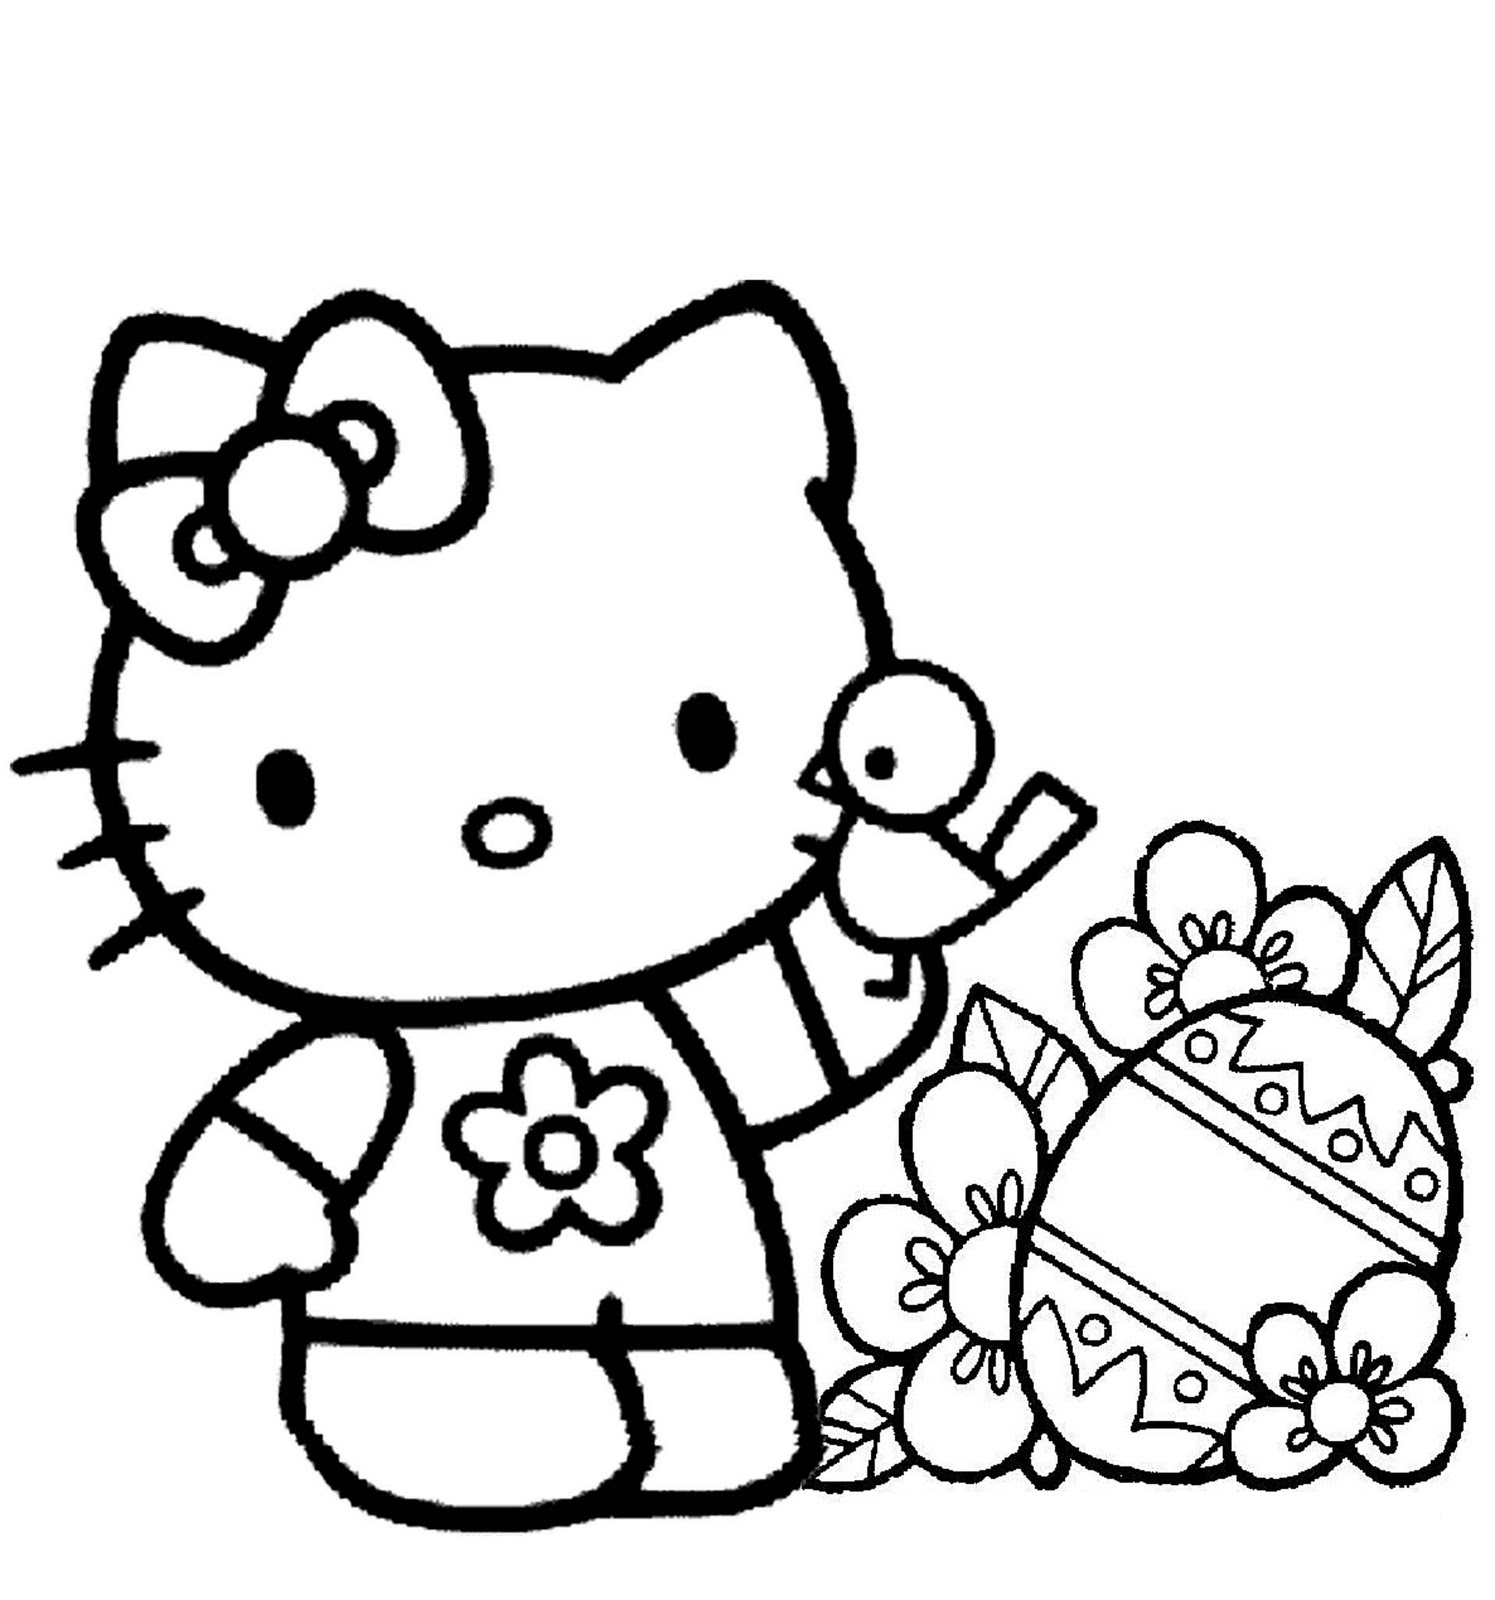 coloring pages printable for teenagers - free printable hello kitty coloring pages for kids